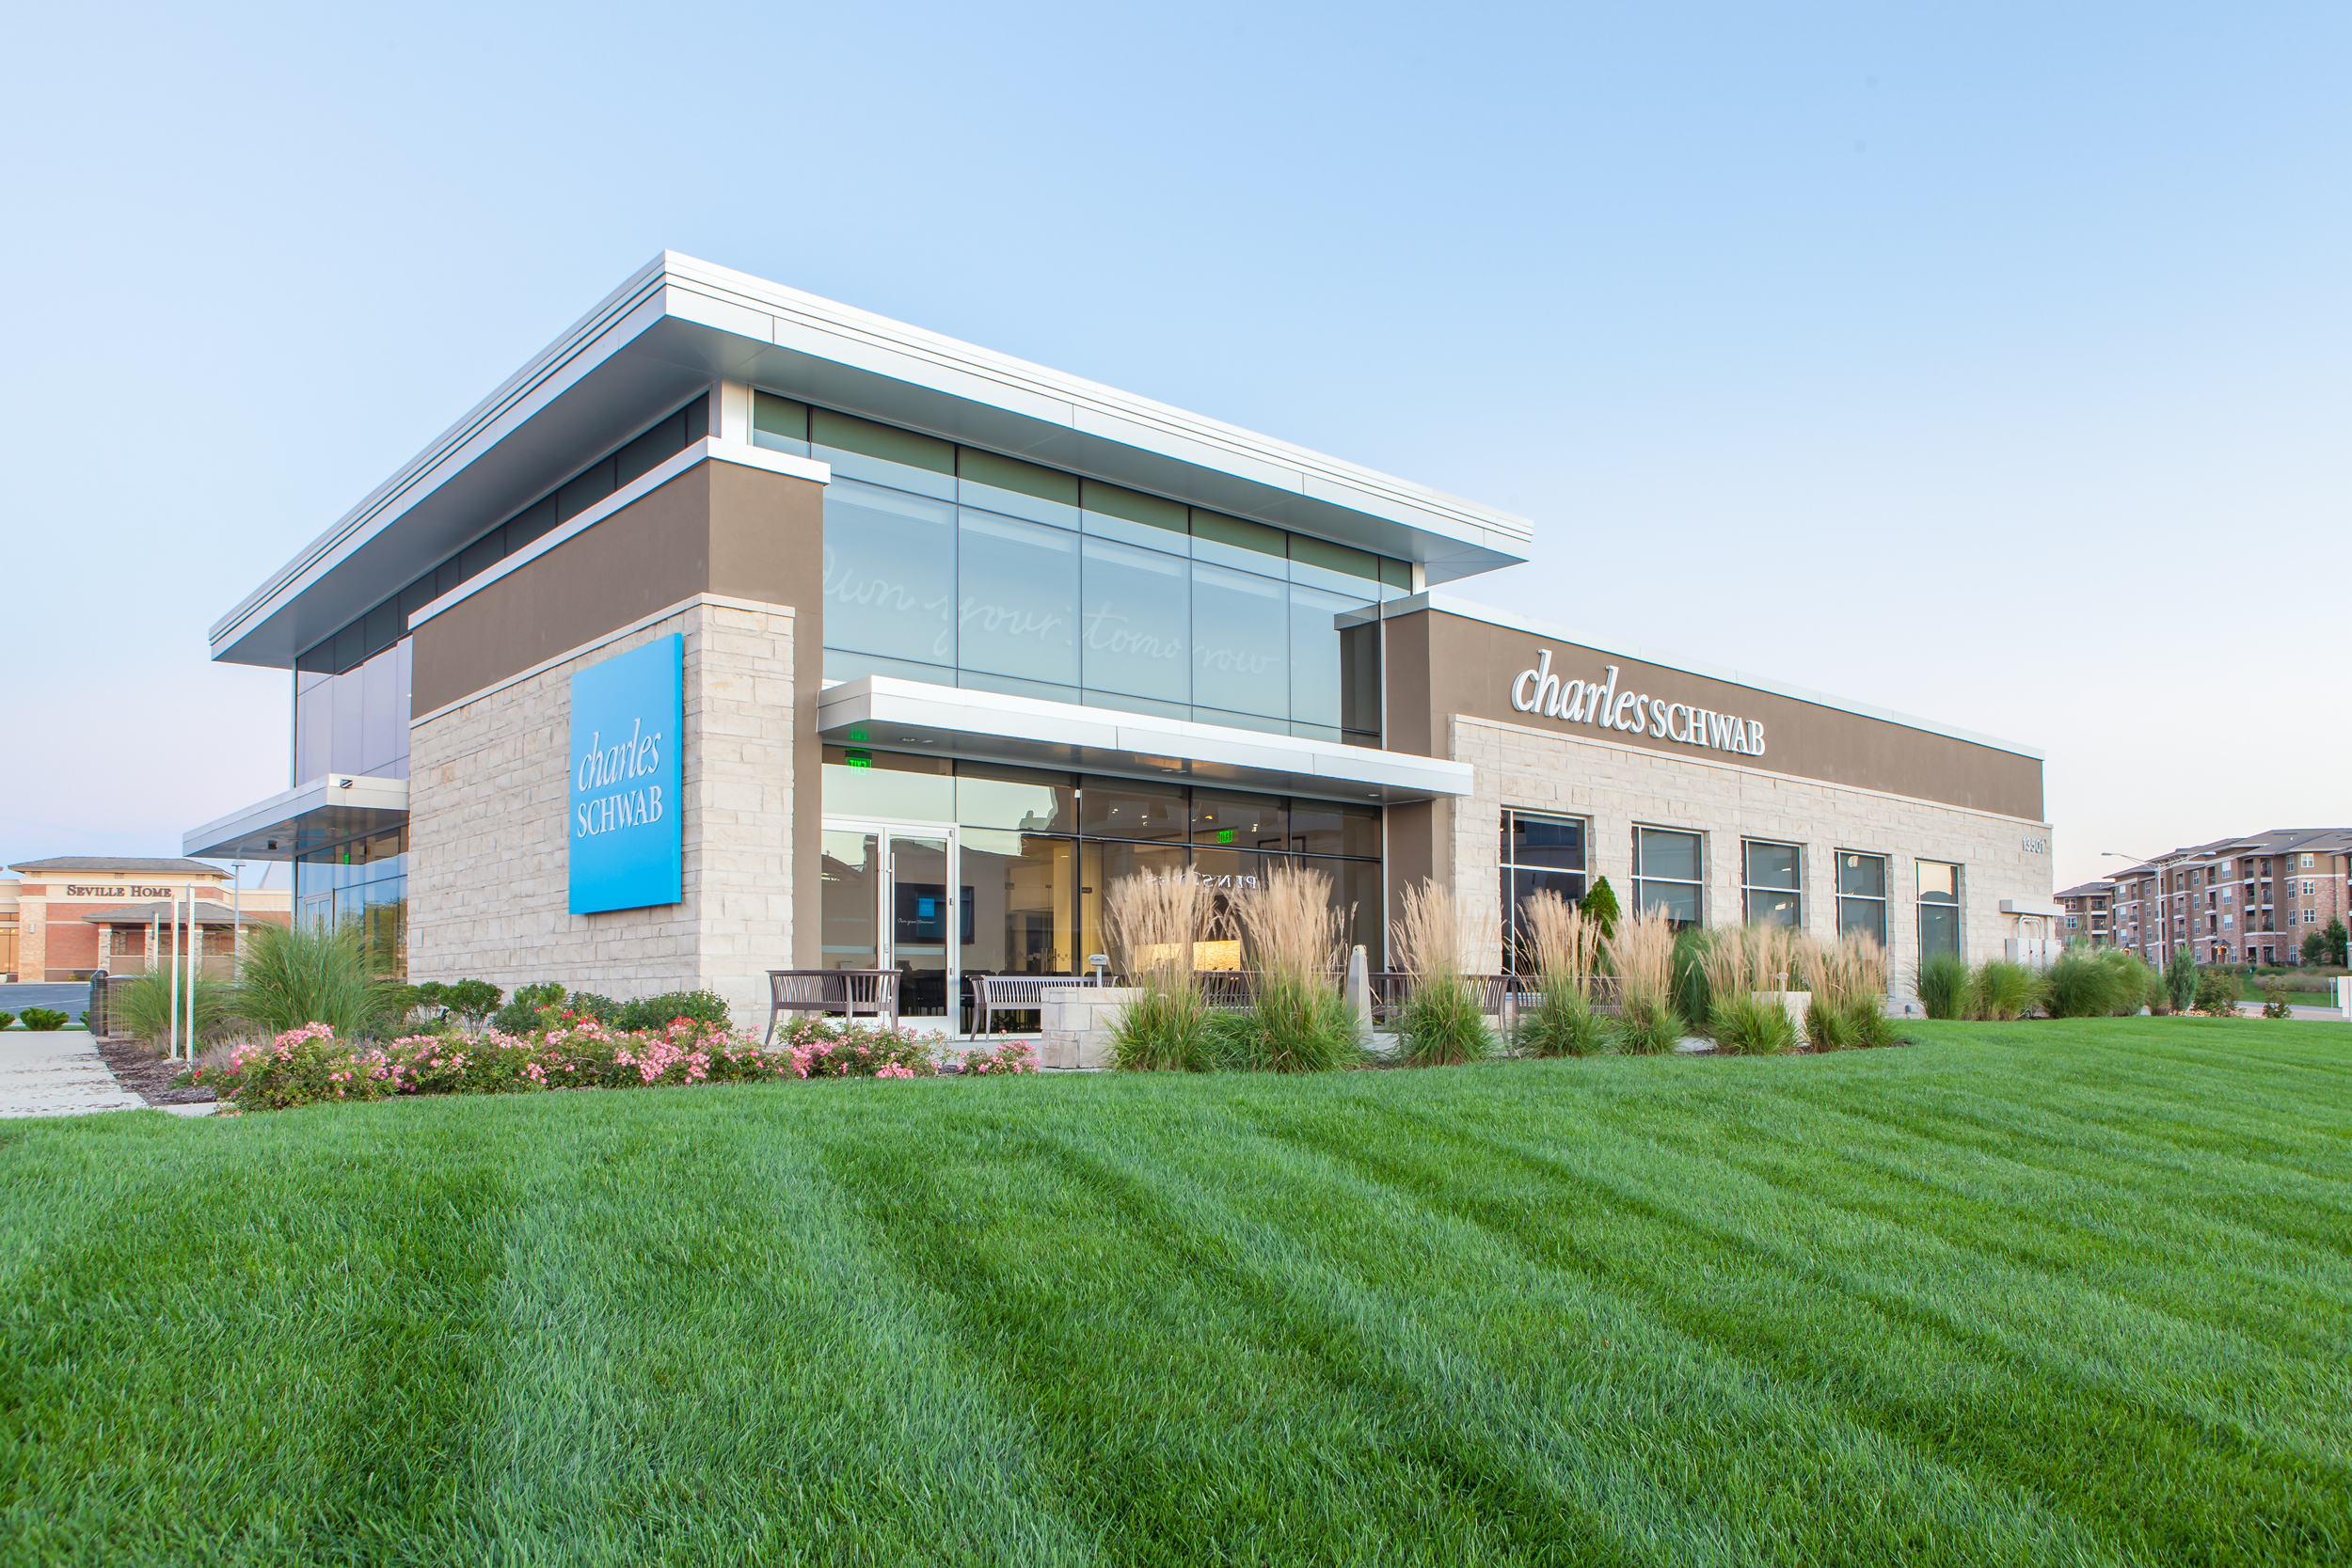 Charles Schwab Office Building in Leawood